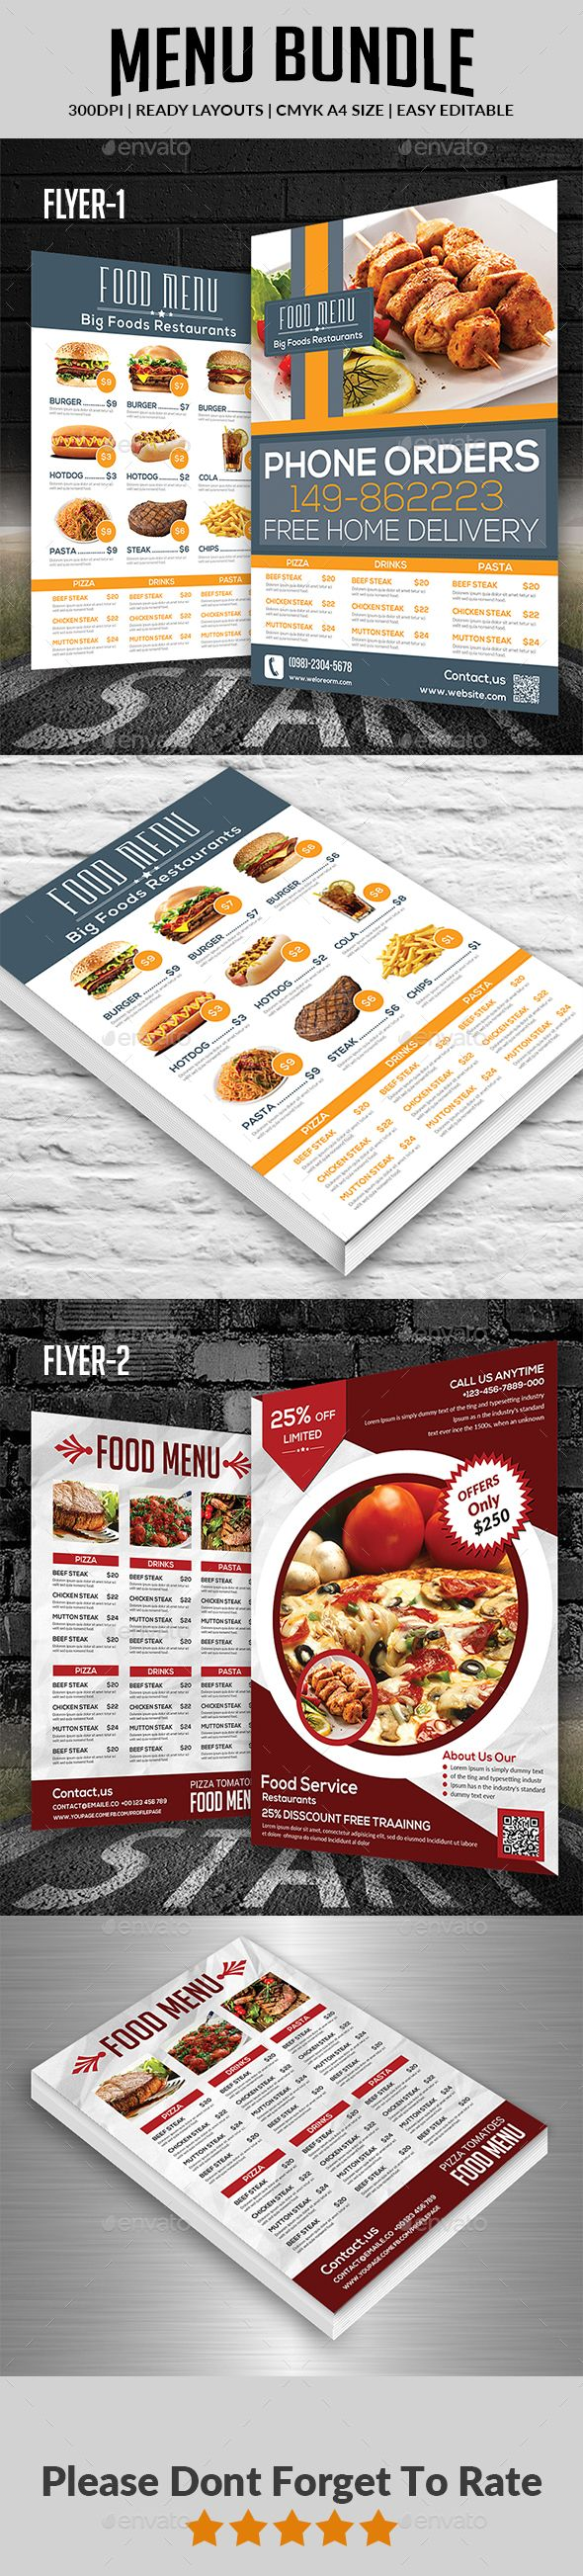 Food  Menu Design Template Bundle  Food Menus Print Template Psd